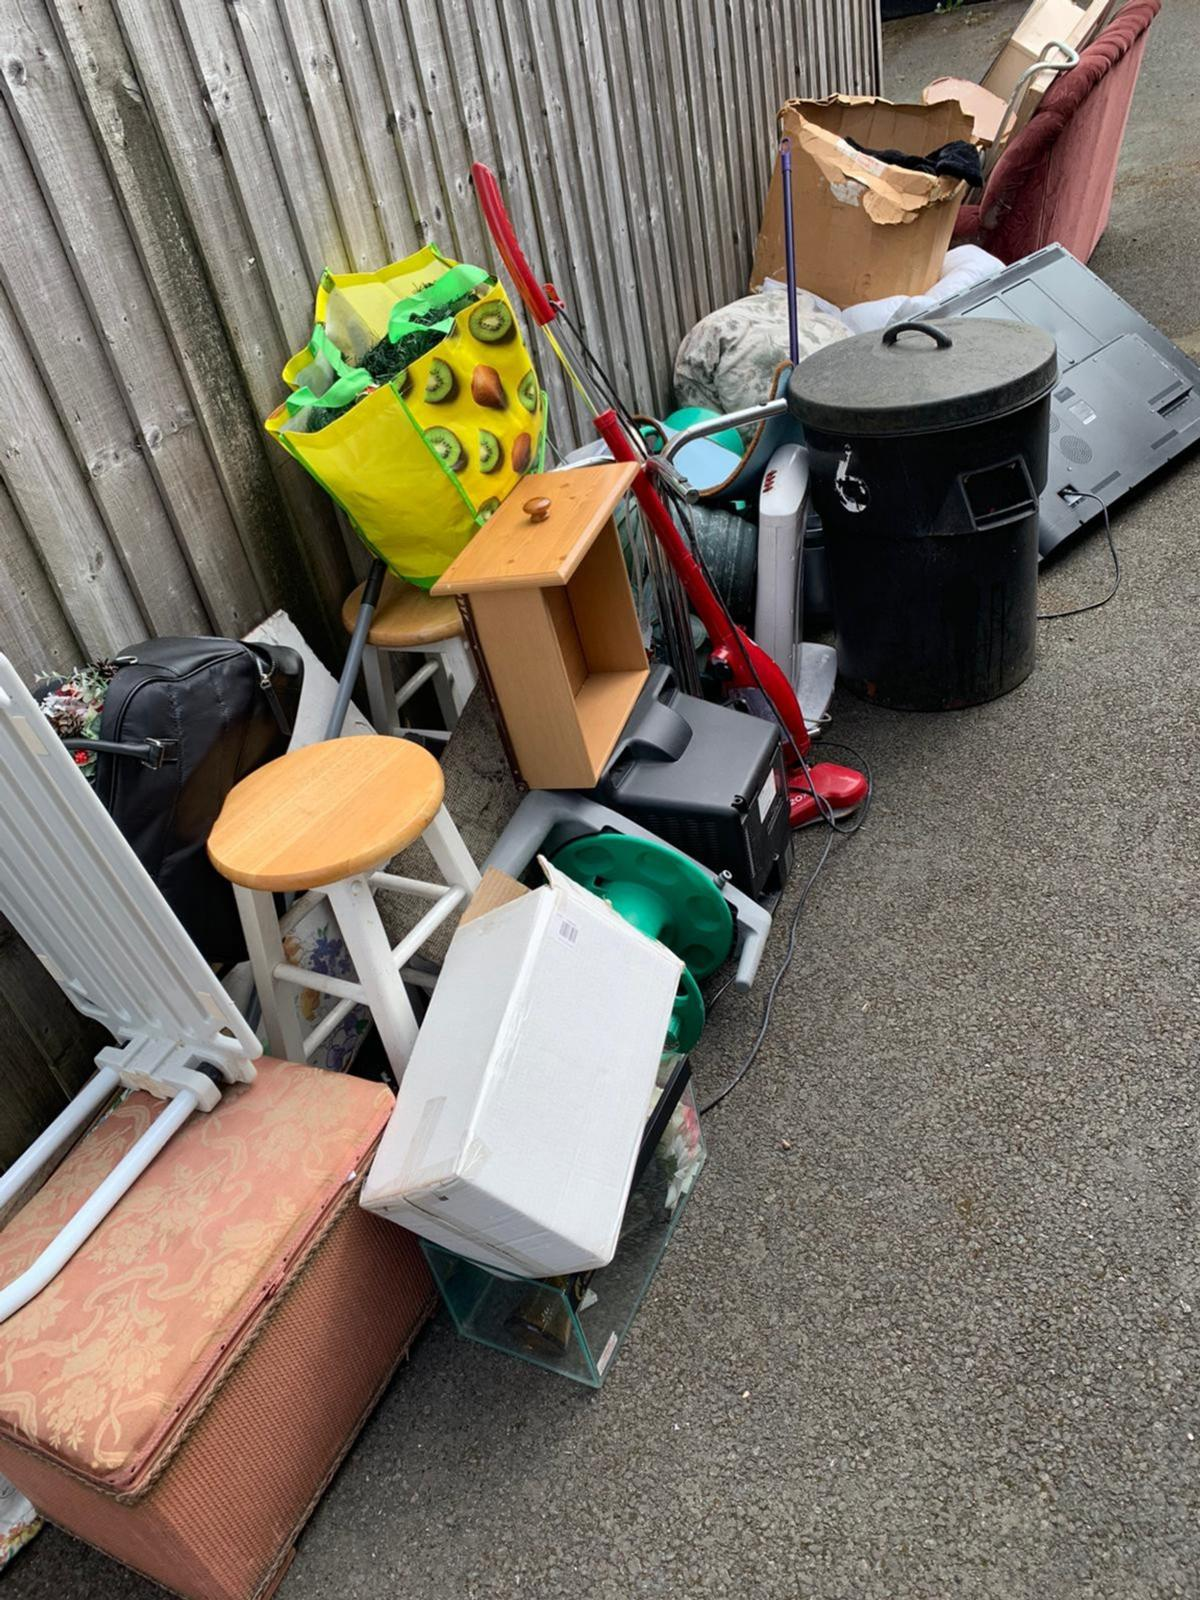 Rubbish Removal call or whatts app photos to 07922308675 cheap prices free quotes prices start from 15 working thru this cornovirus STAY SAFE